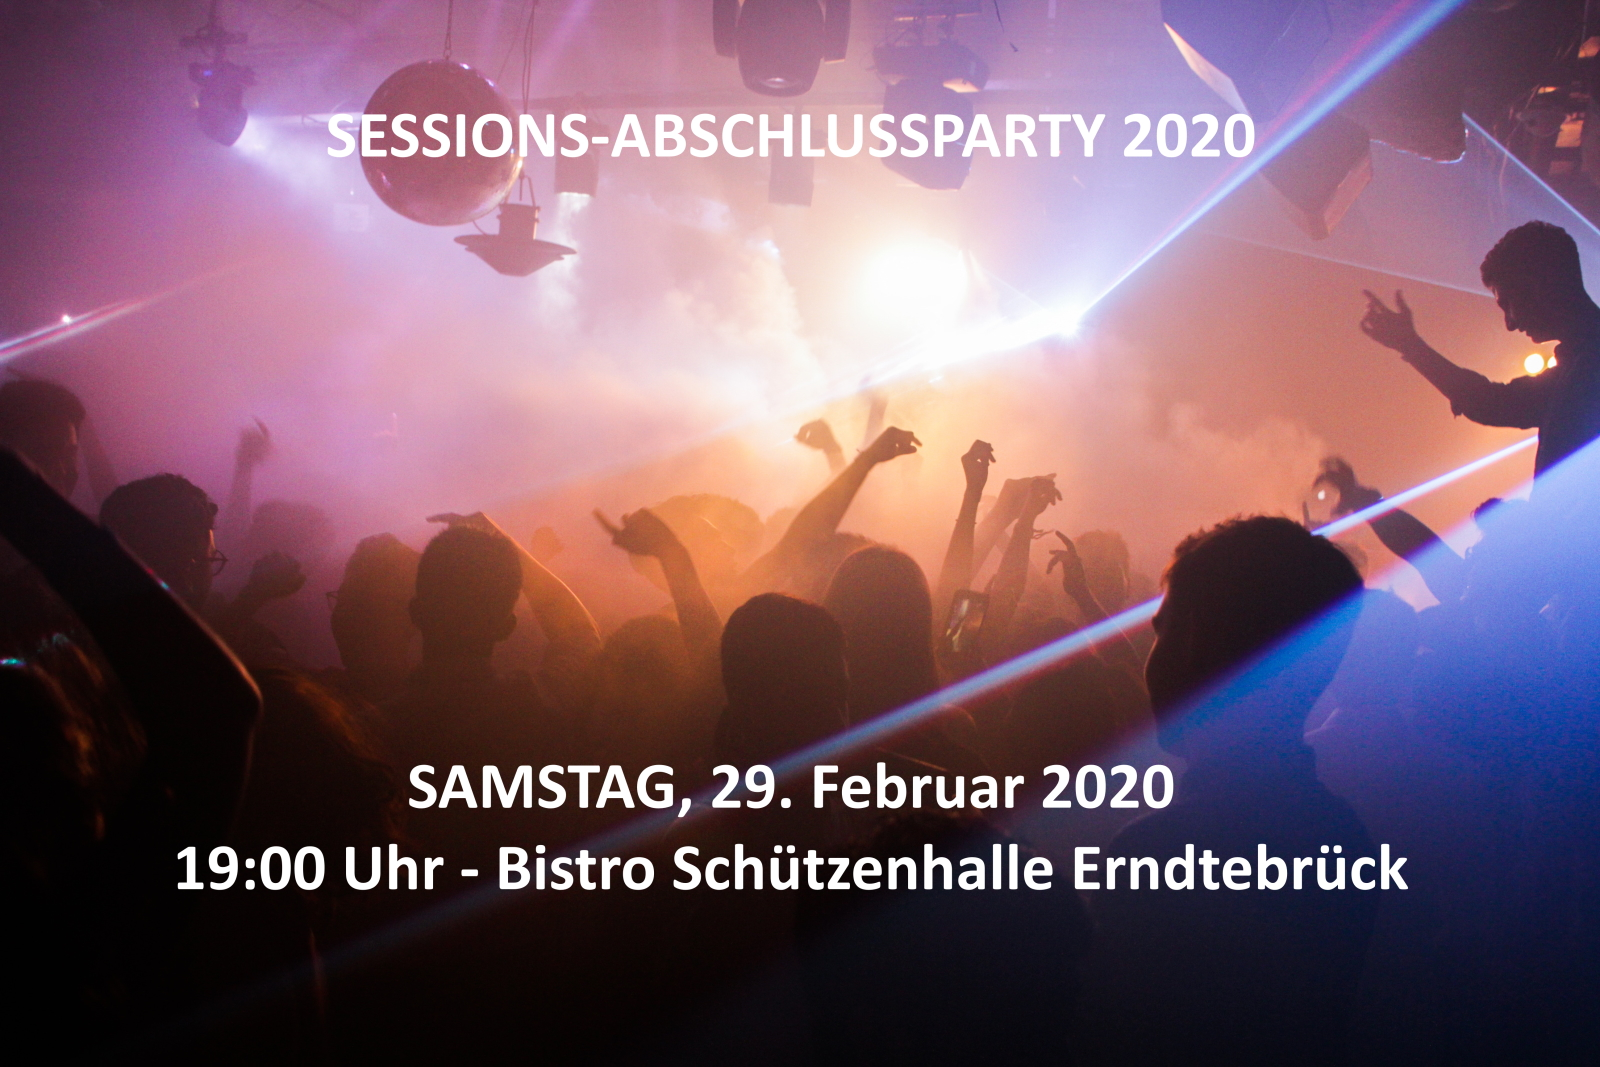 Sessionsabschlussparty